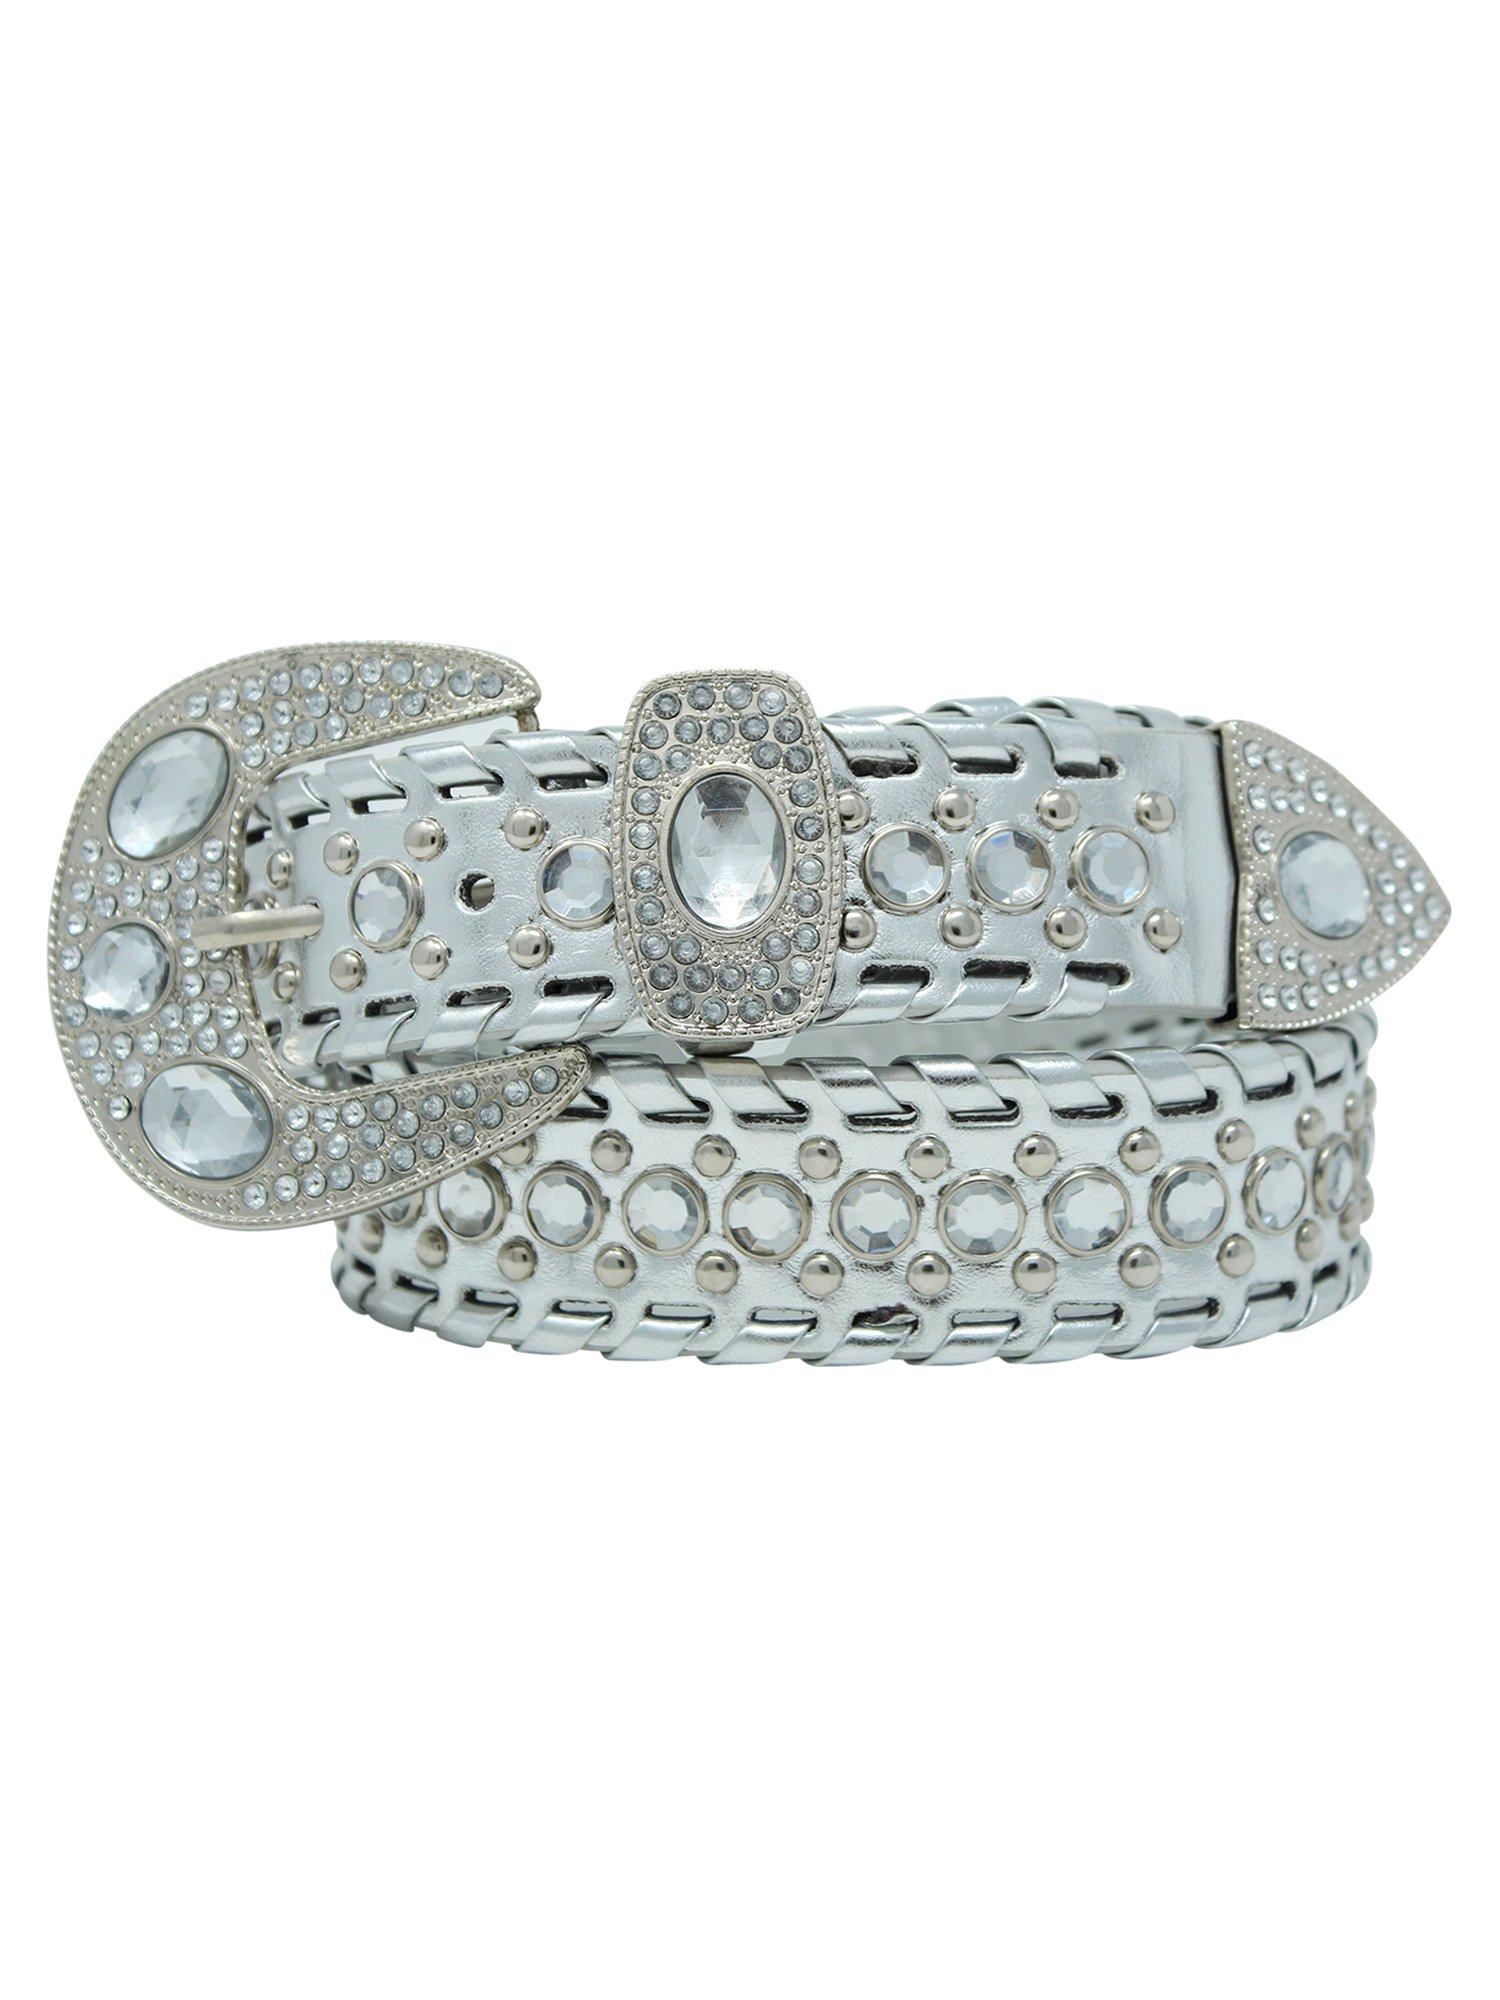 Silver Rhinestone Western Style Belt Size Small by Luxury Divas